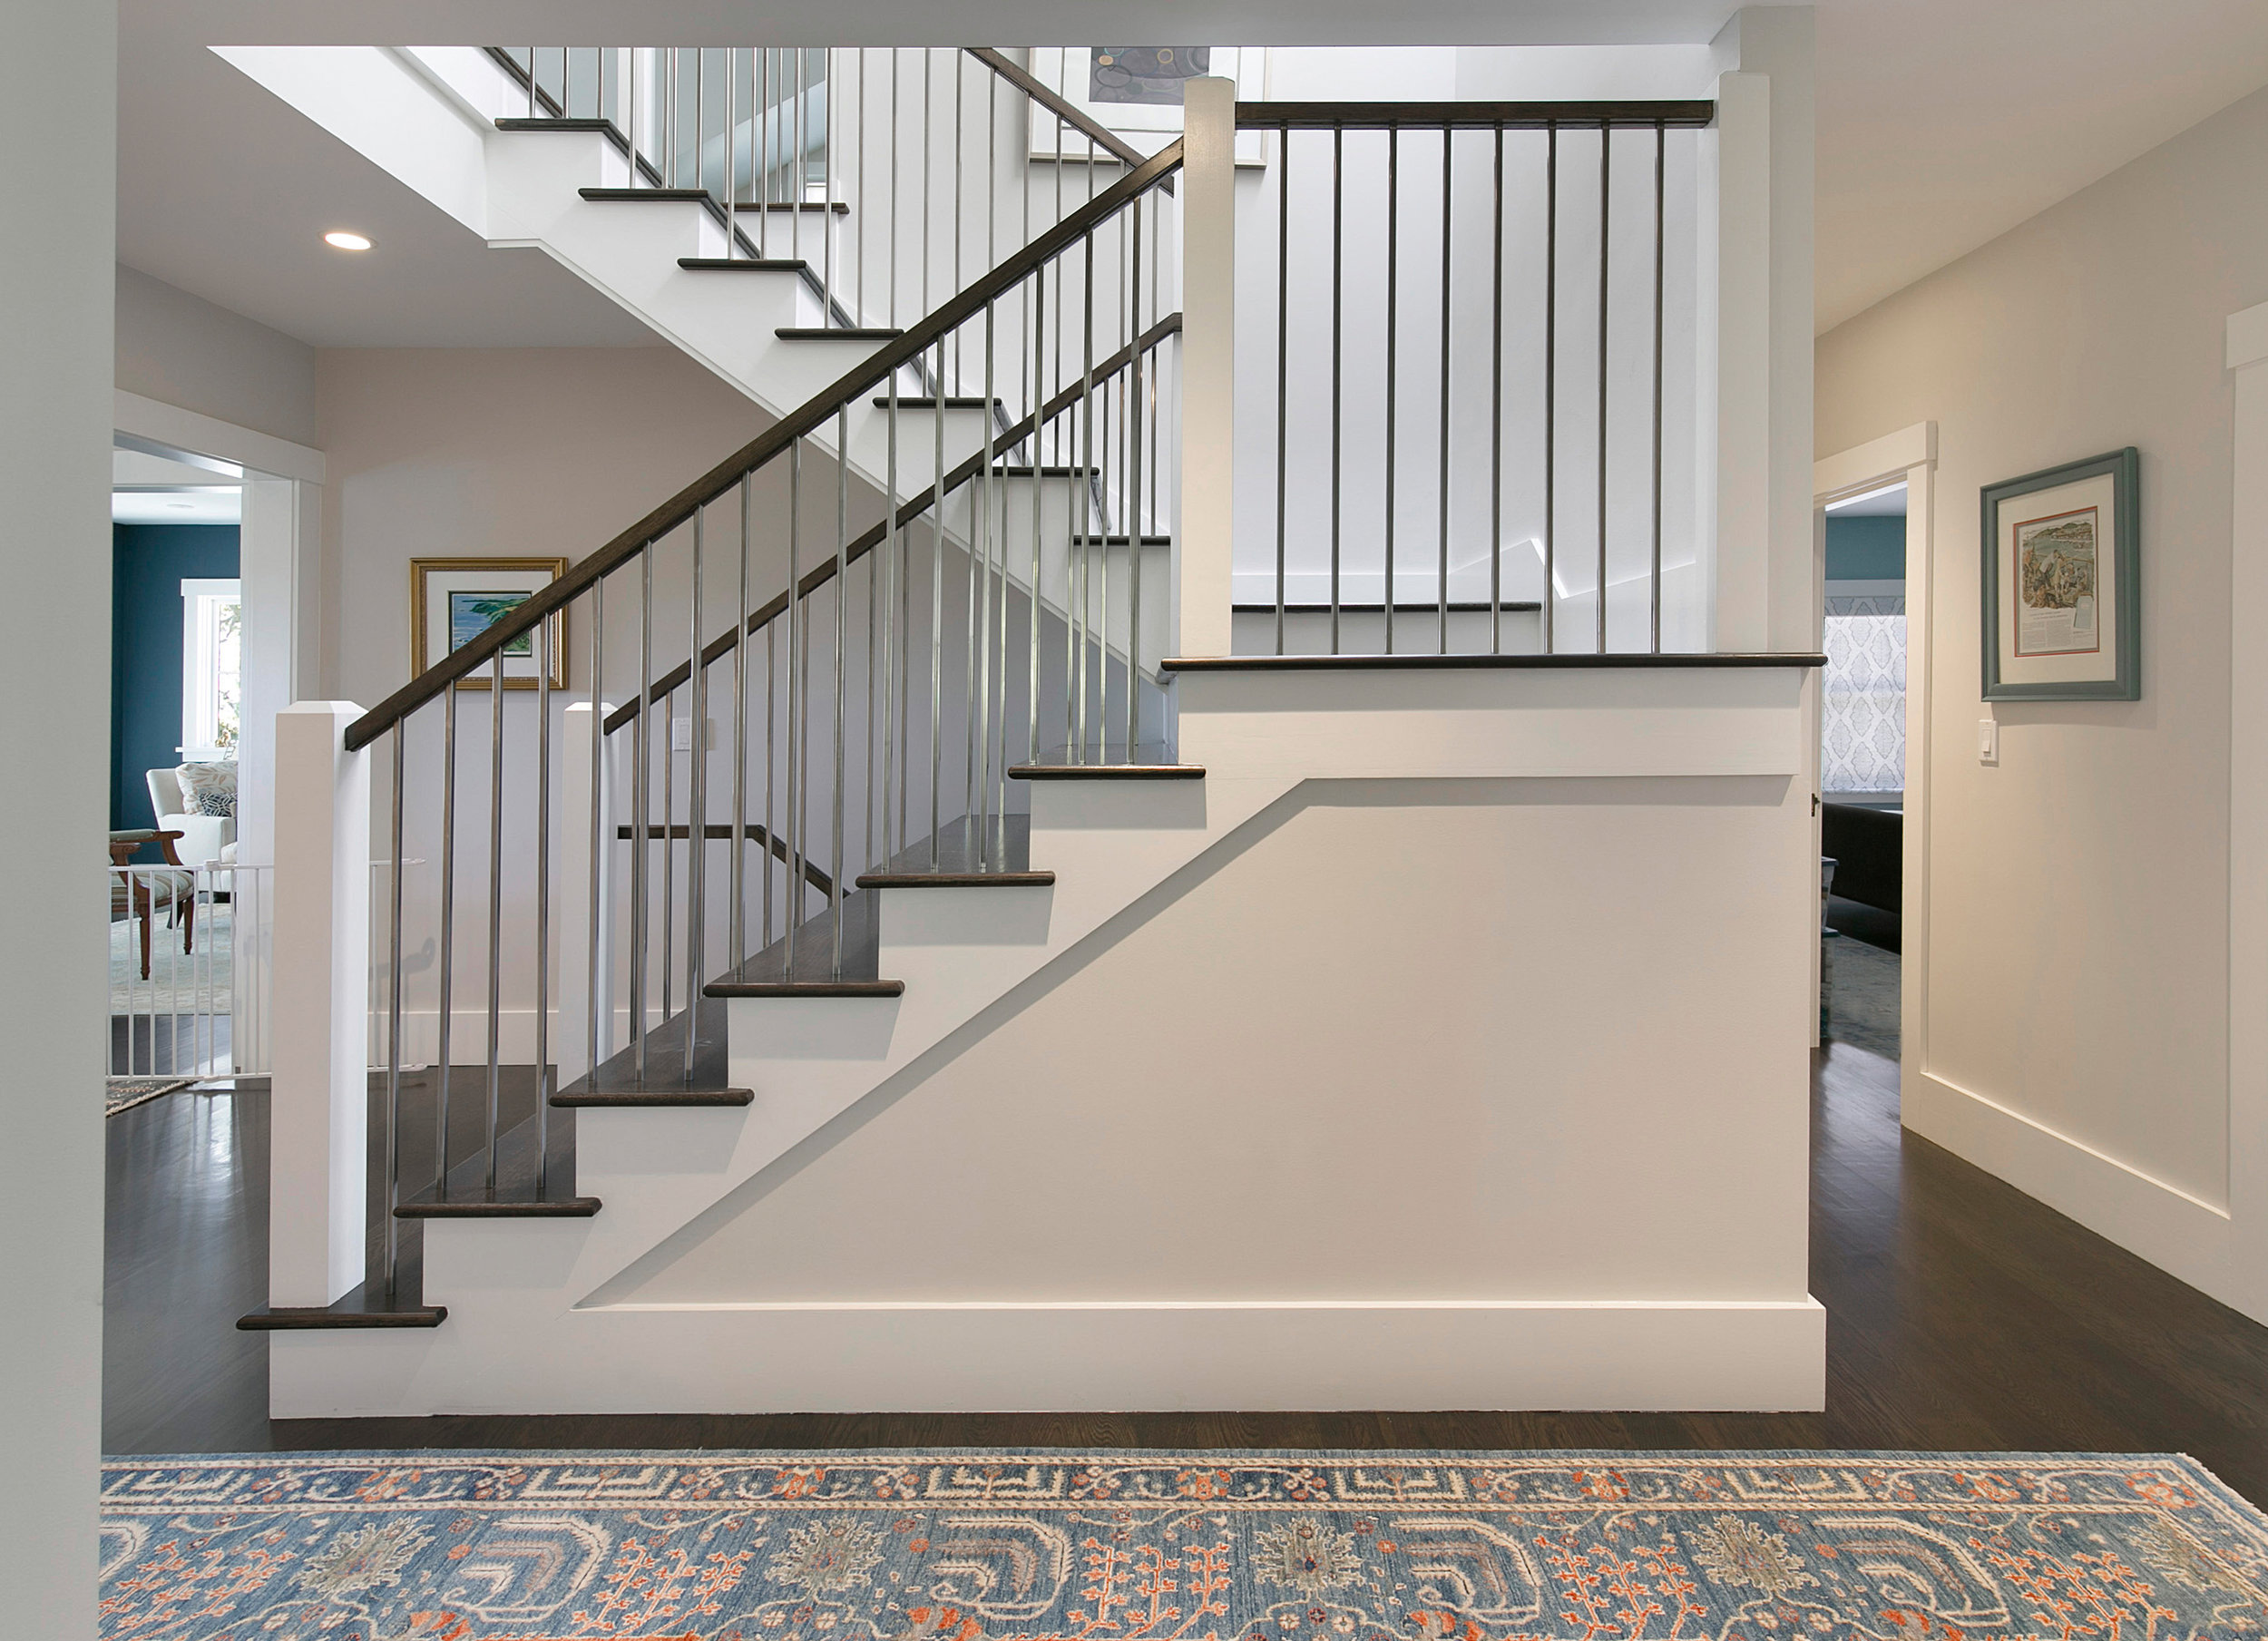 Berkeley whole home remodel interior design rug and stair.jpg